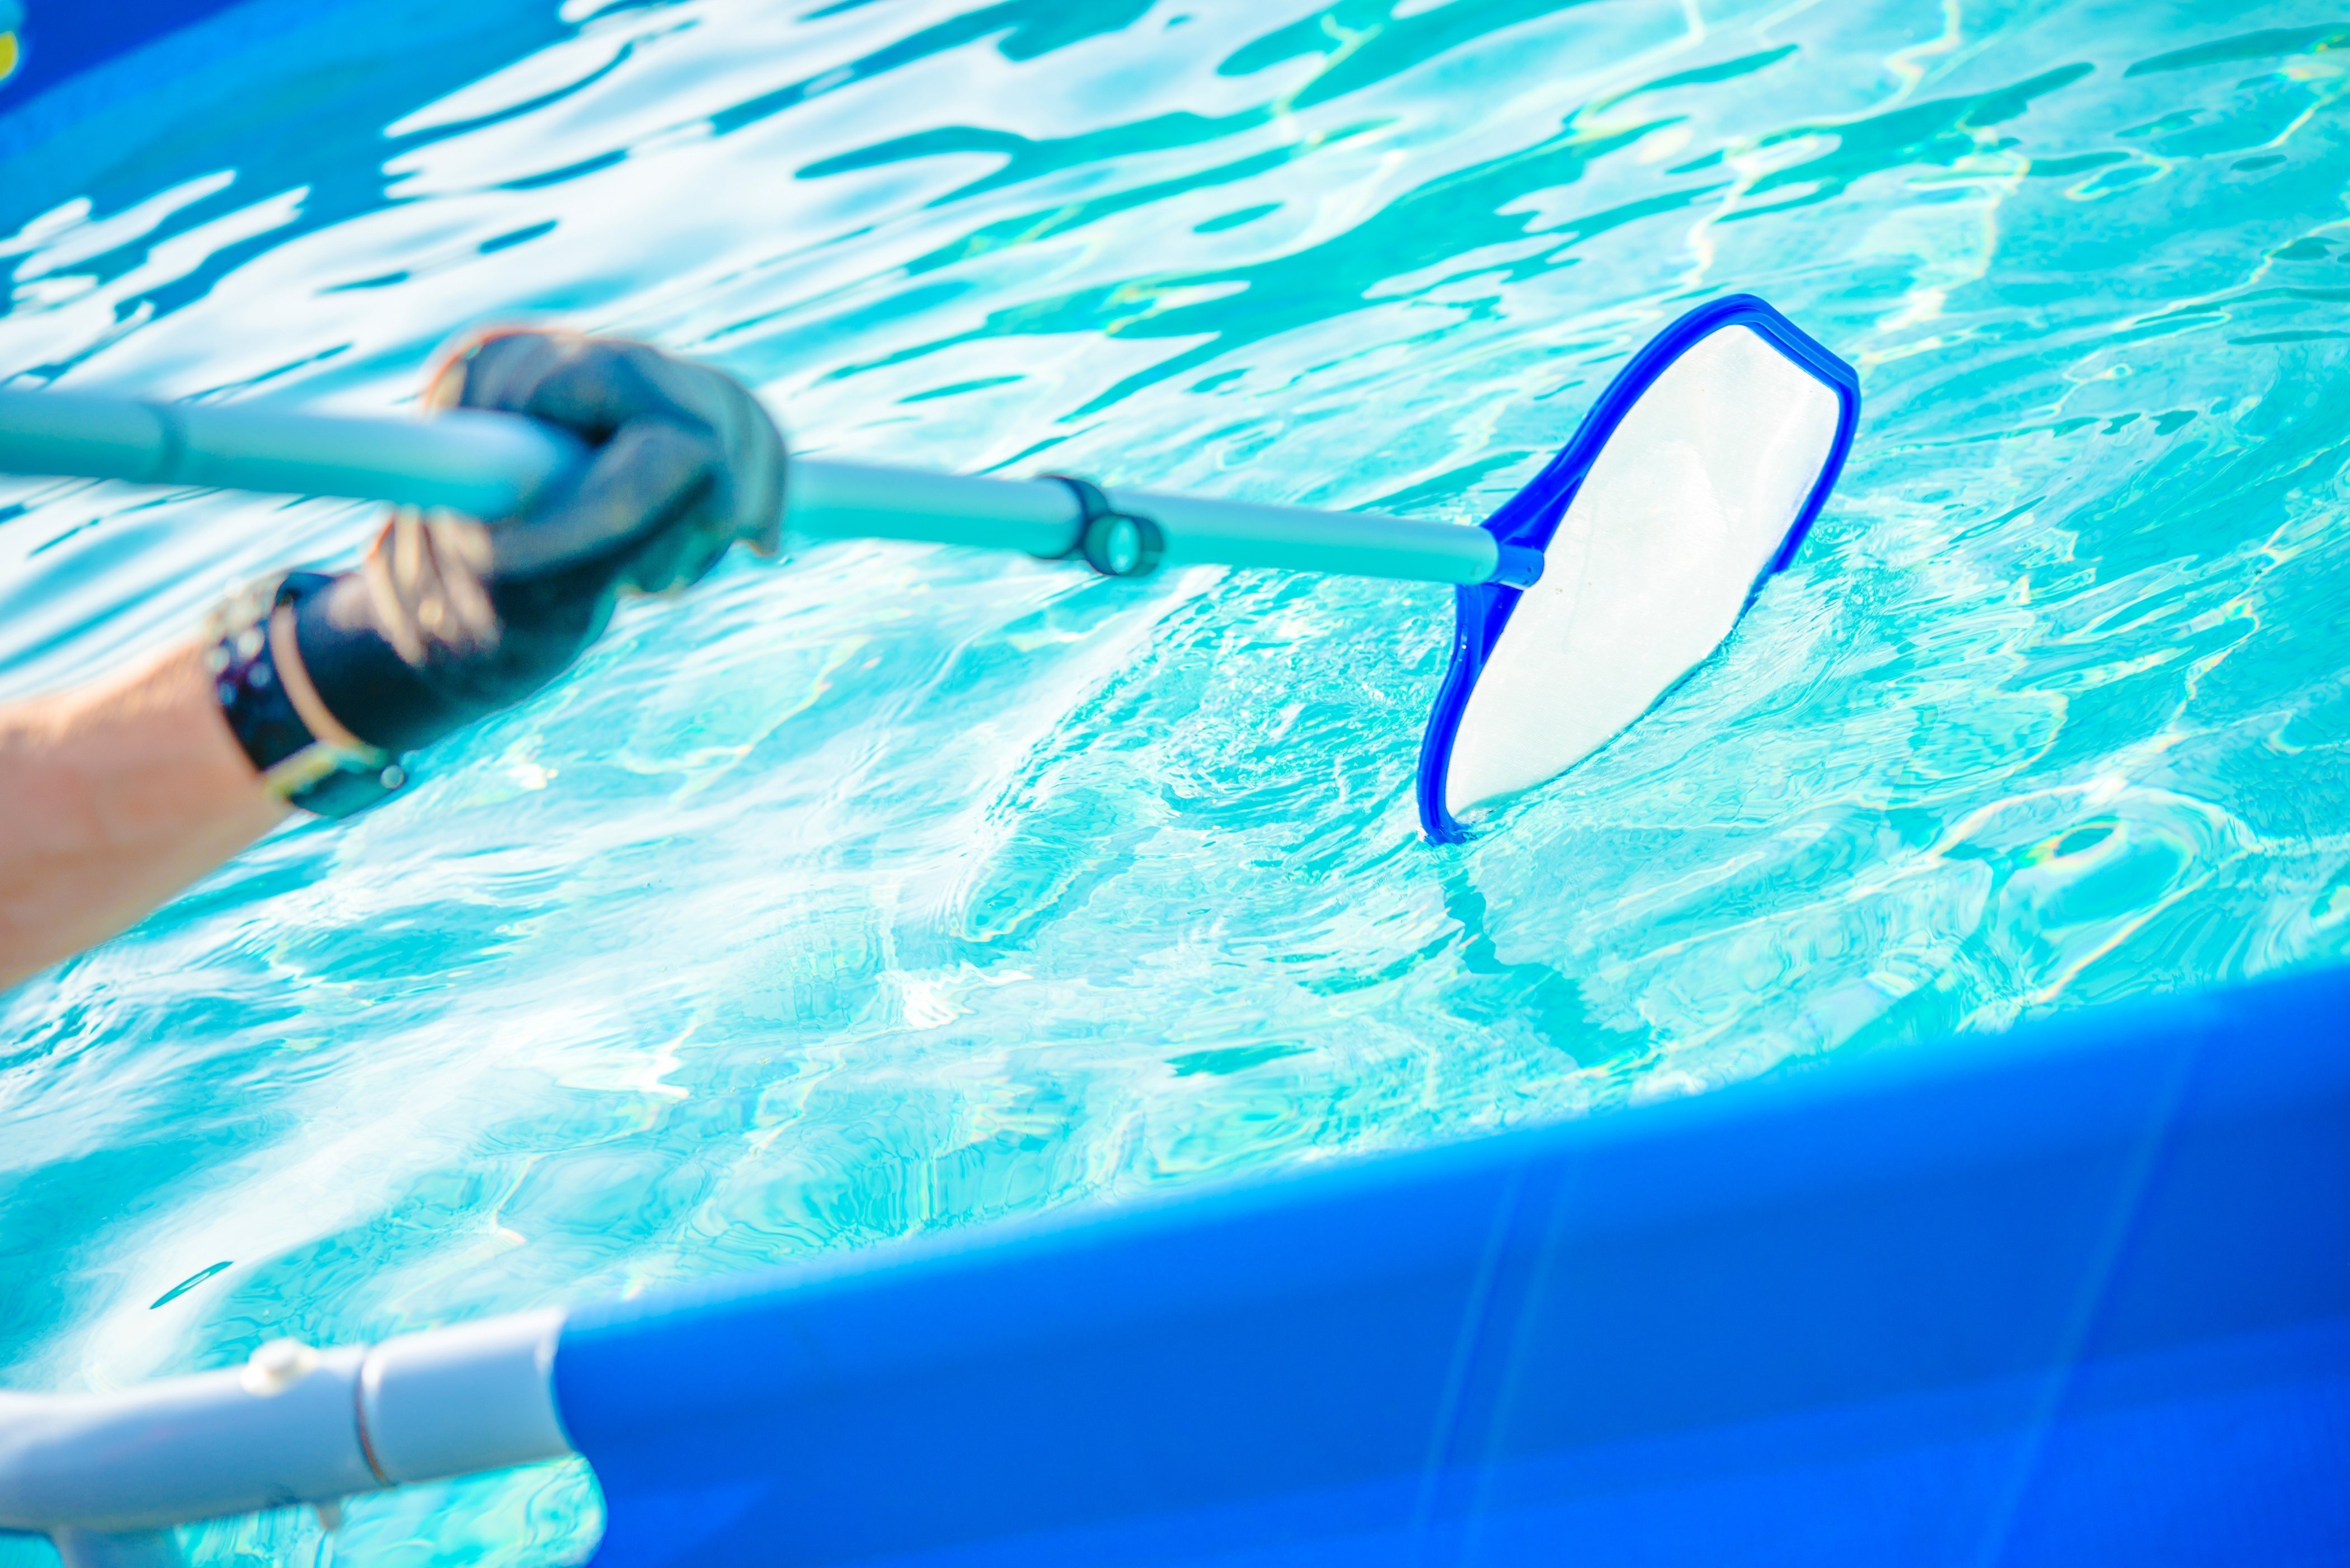 Efficient way to clean your pool for Opening Season